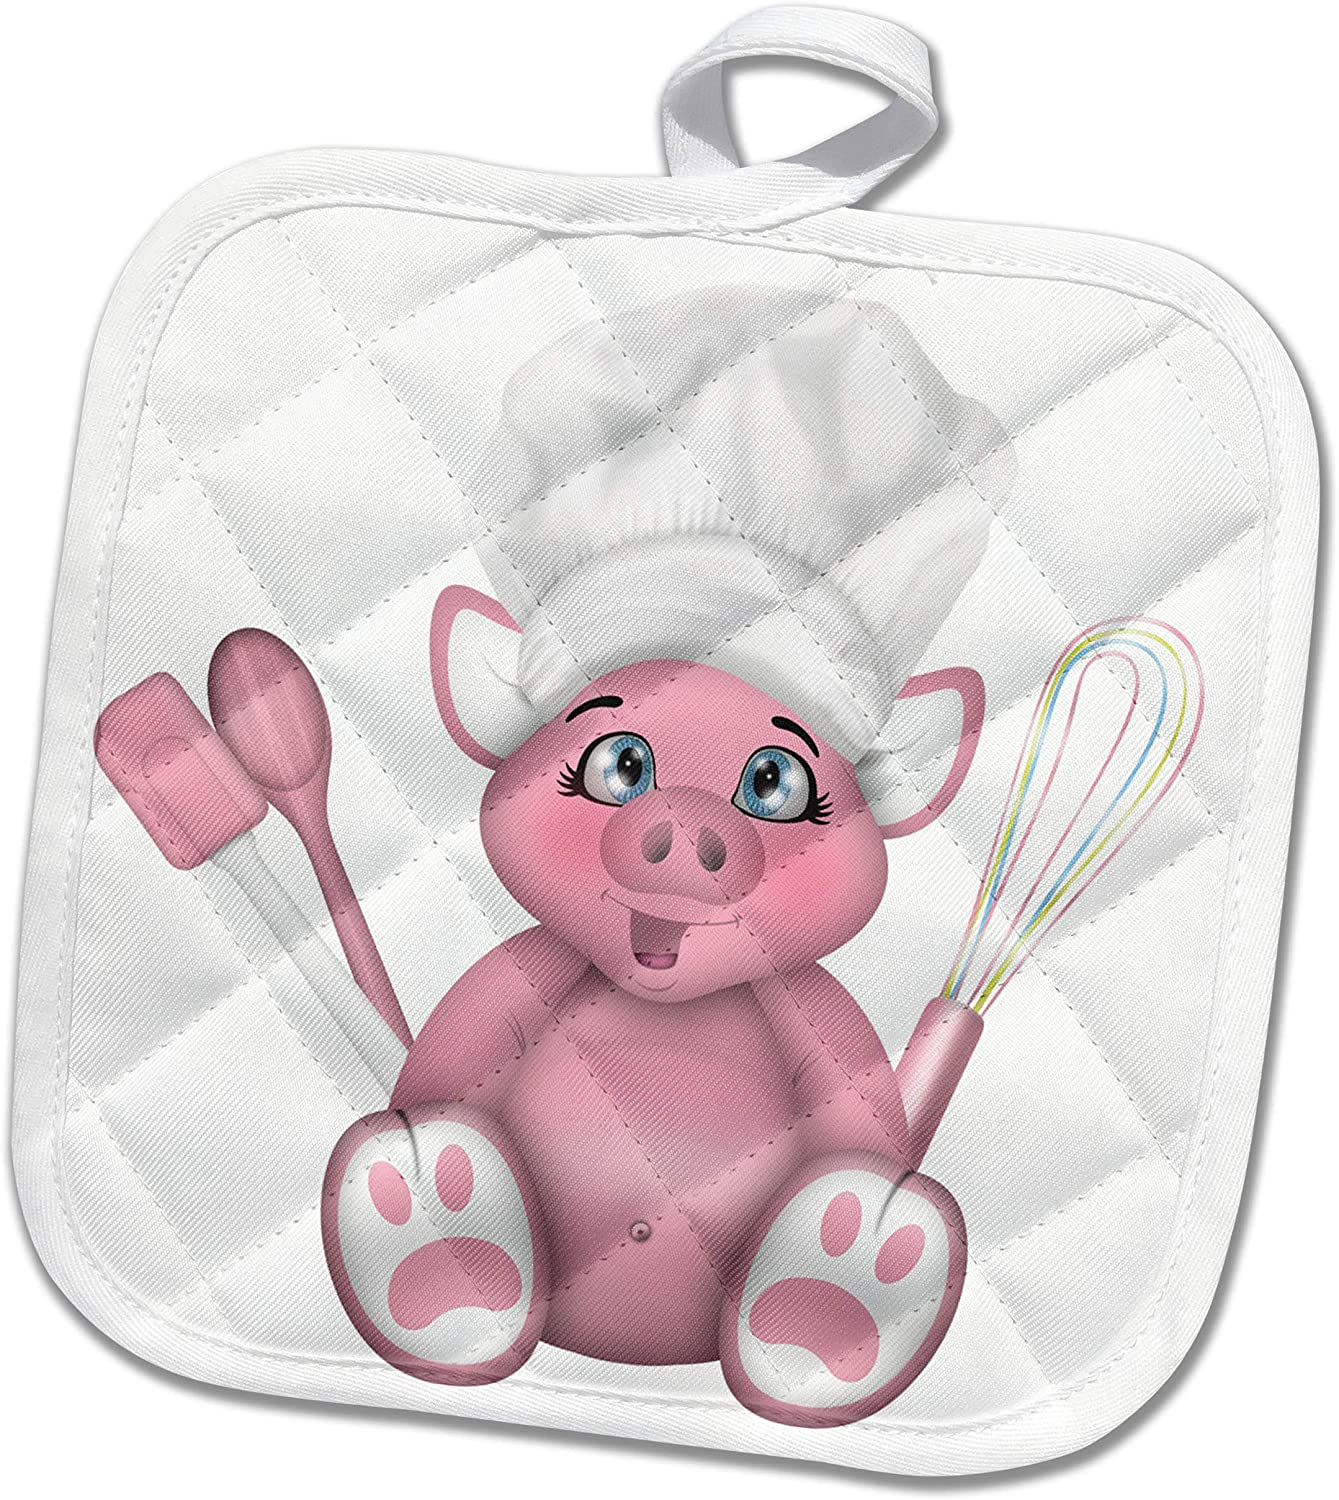 3dRose Cute Pink Pig Chef With Whisk, Spatula, and Spoon Illustration - Potholders (phl_327351_1)